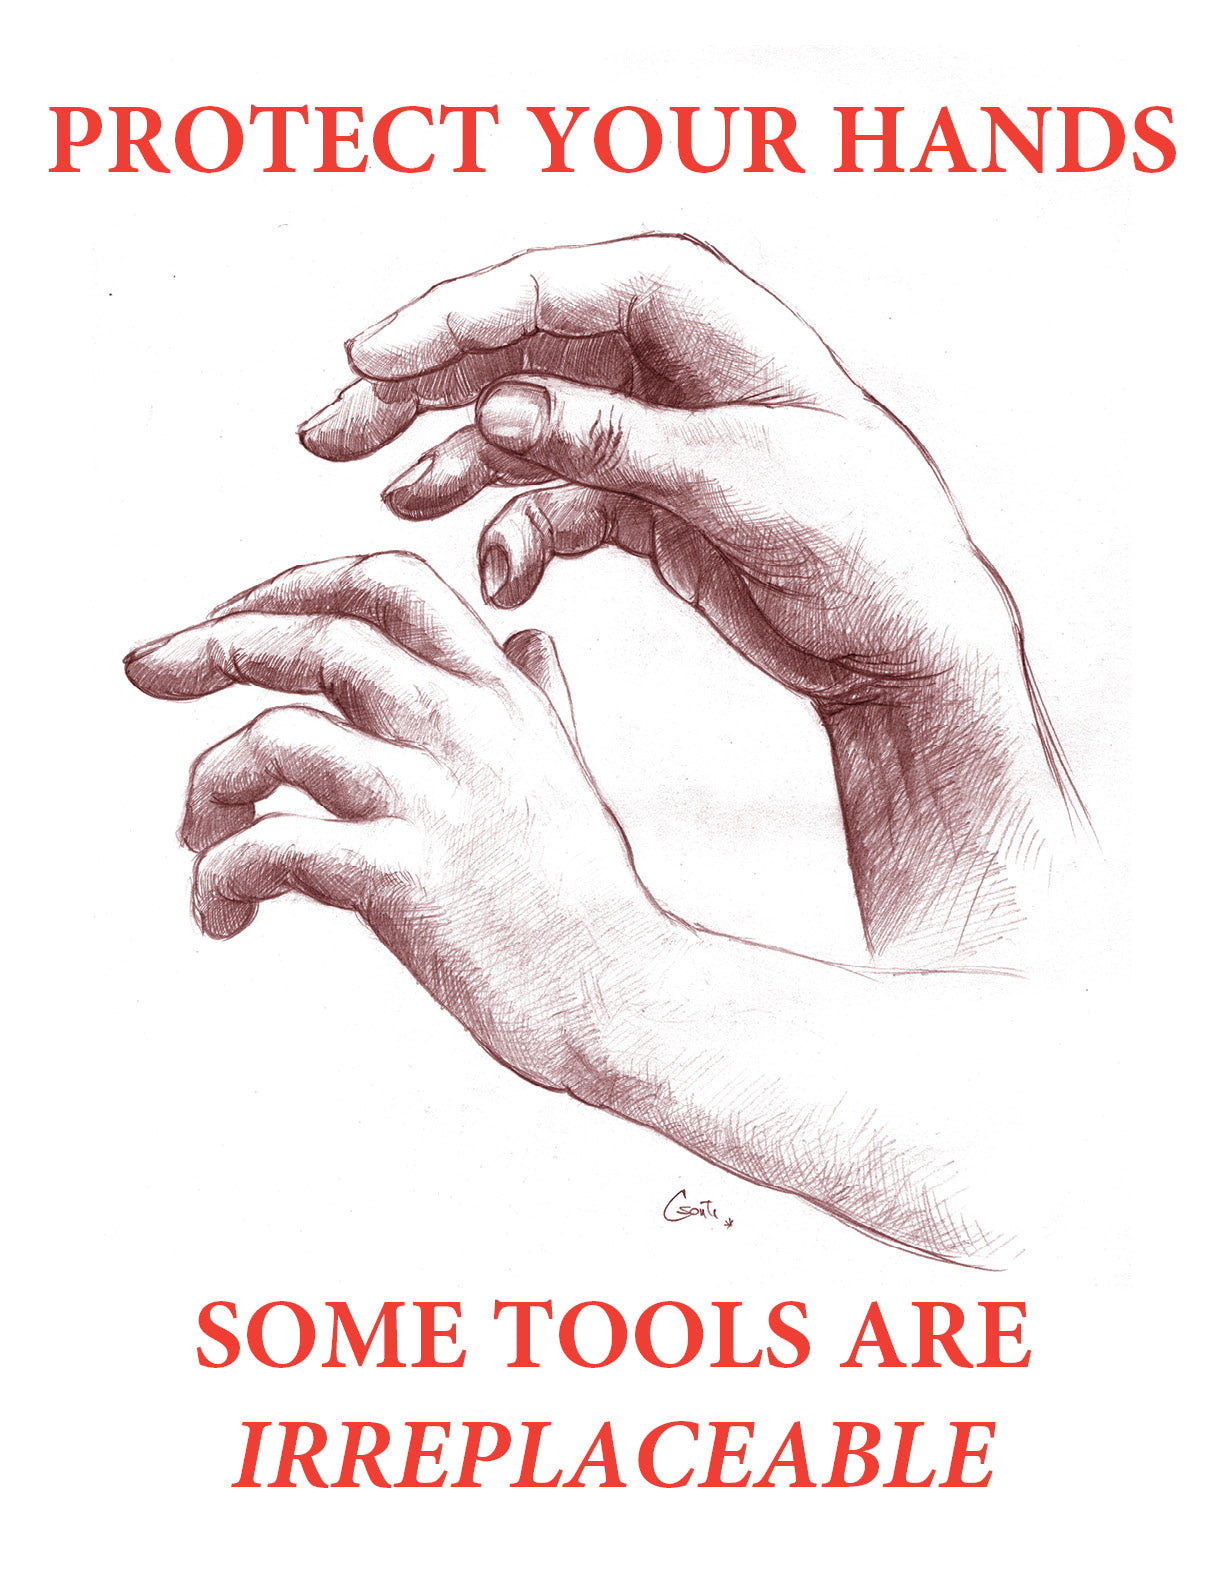 Protect Your Hands Some Tools Are Irreplaceable - Safety Poster